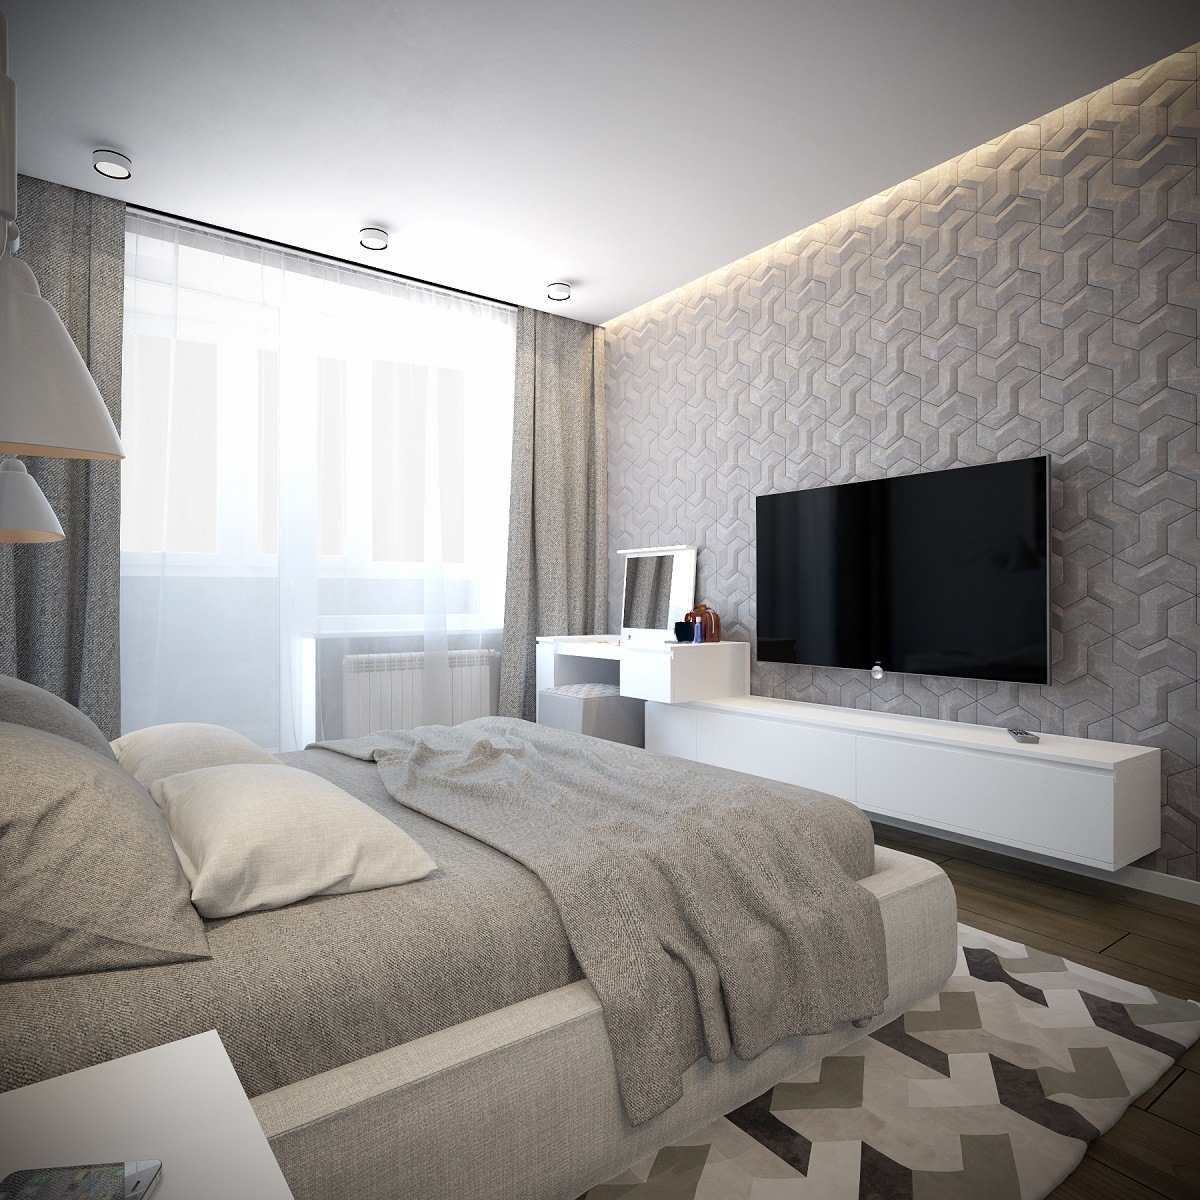 https://m2corp.com.ua/wp-content/uploads/2017/03/bedroom41.jpg